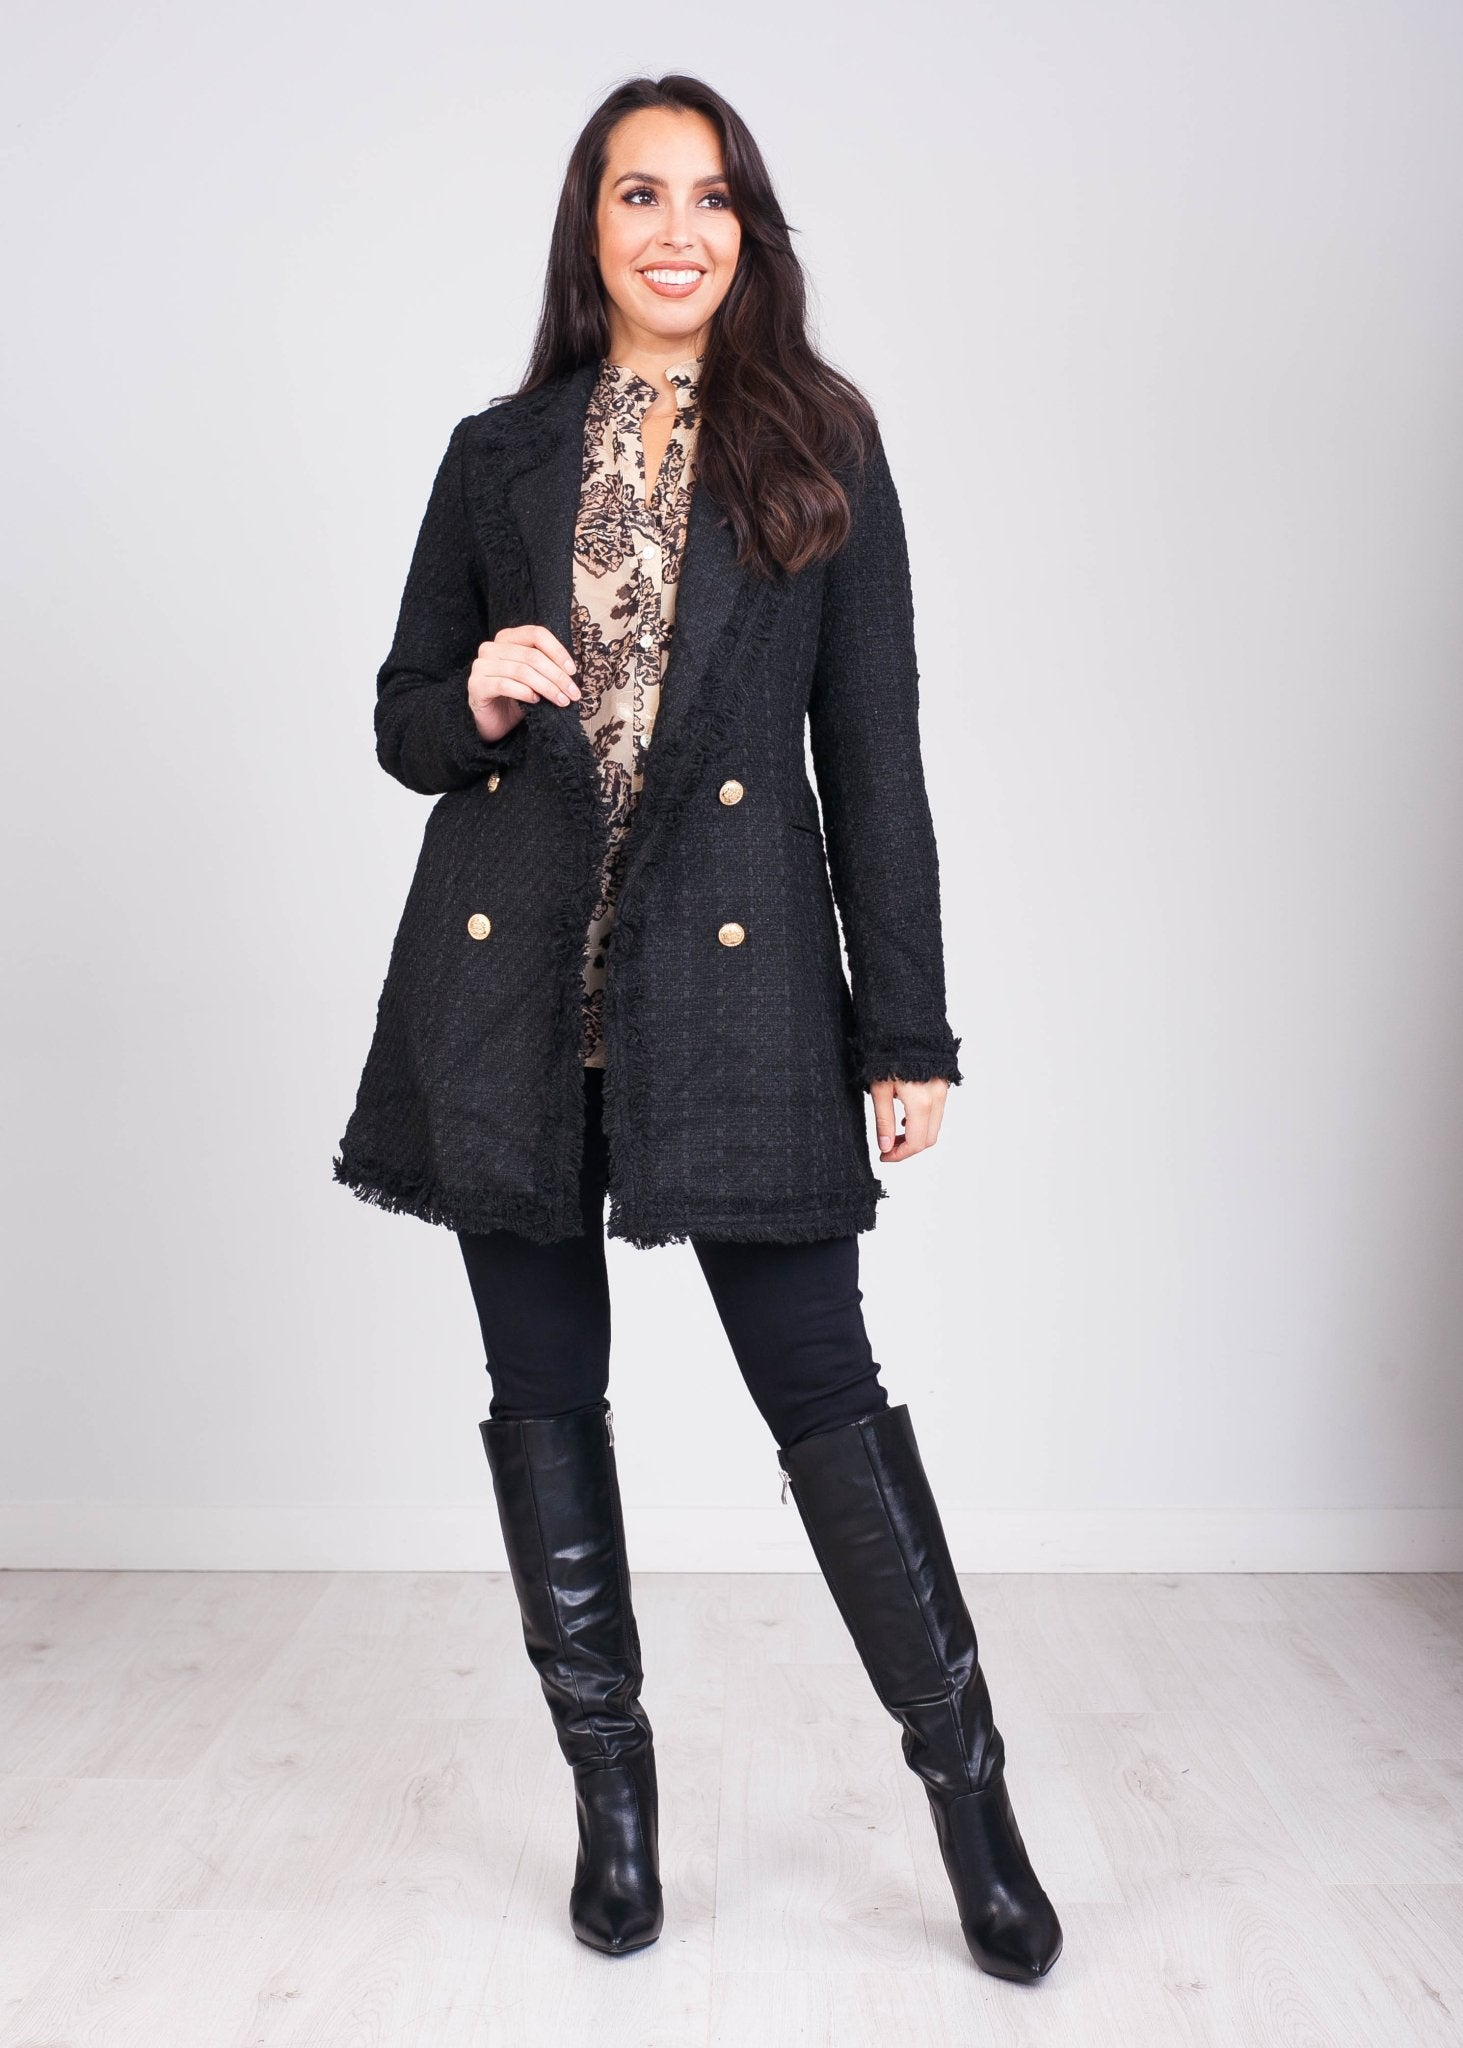 Arabella Black Tweed Longline Blazer - The Walk in Wardrobe